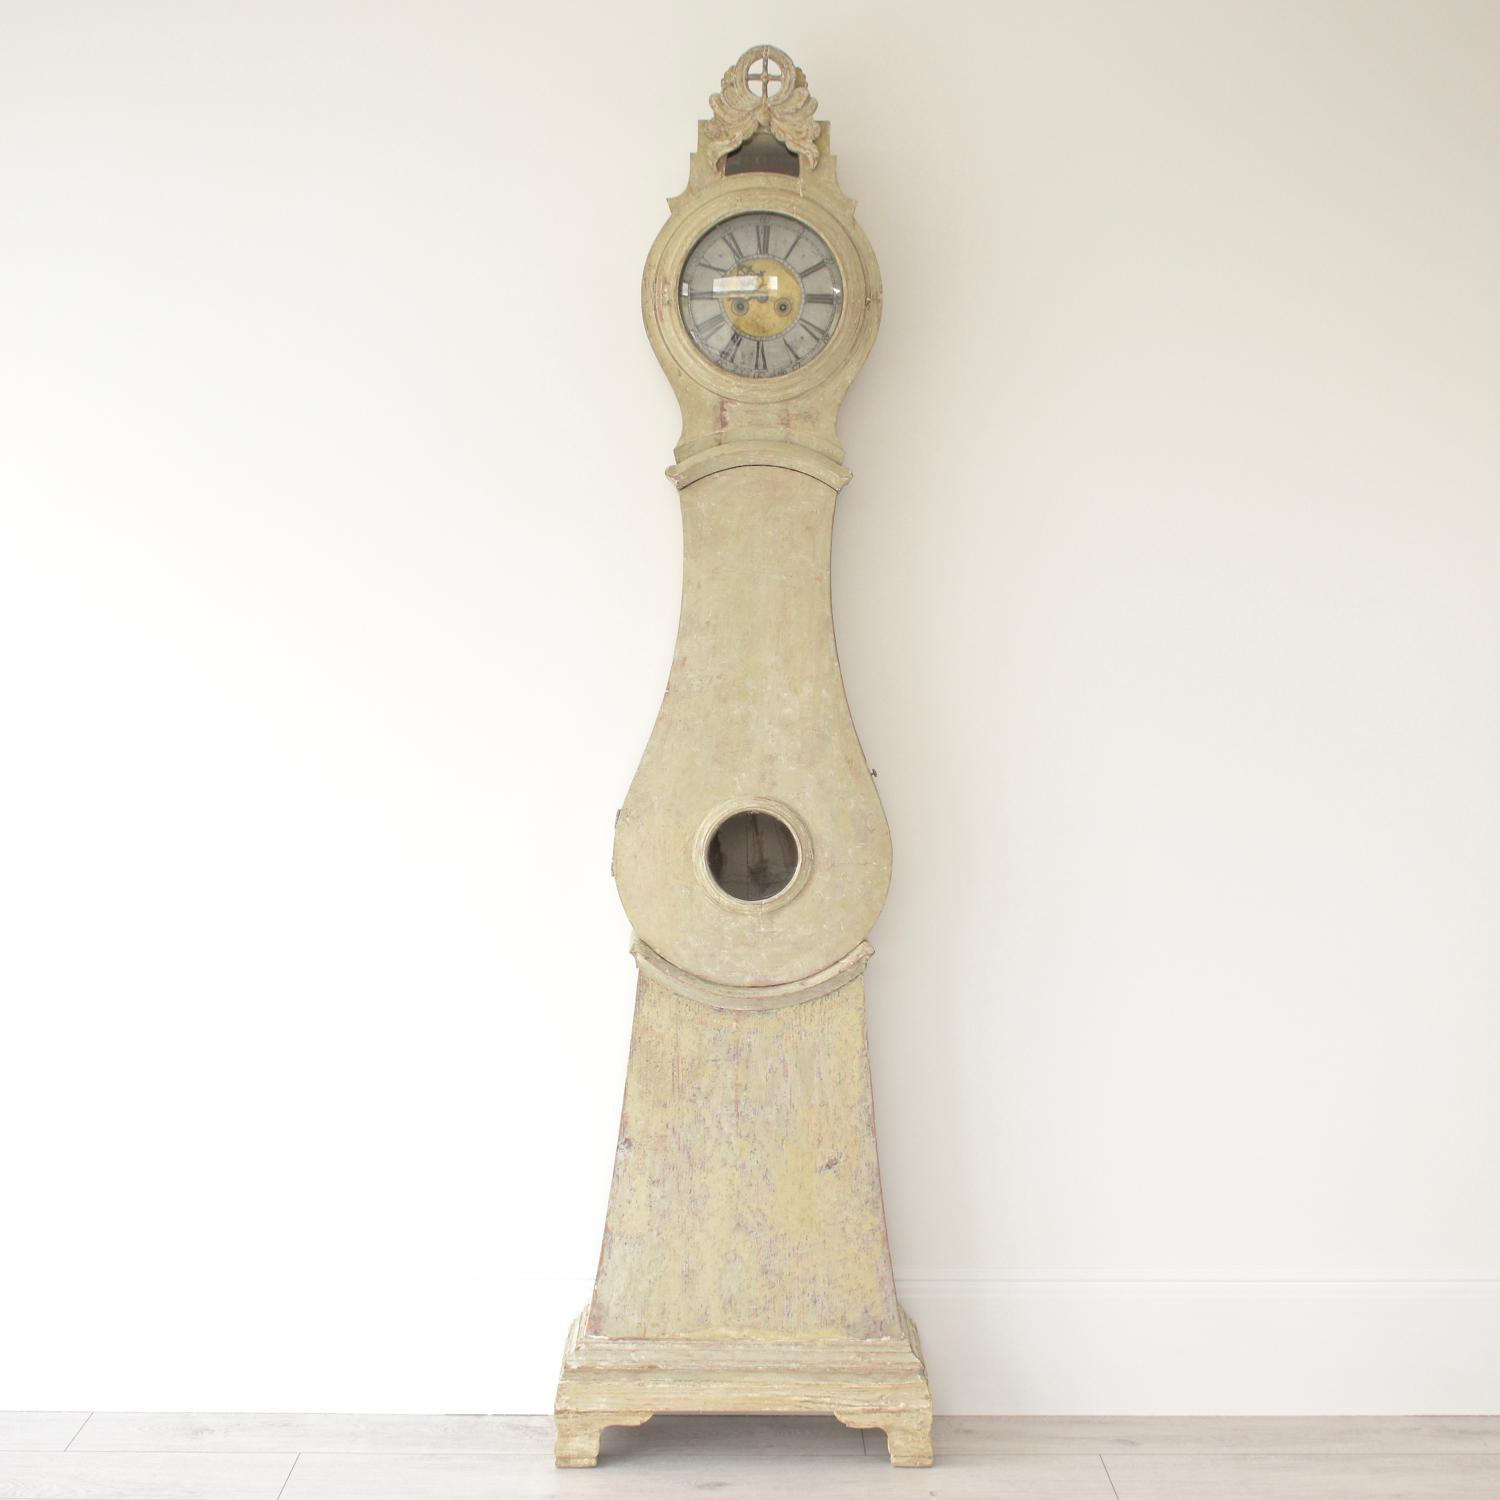 MAGNIFICENT SWEDISH ROCOCO CLOCK IN ORIGINAL PAINT